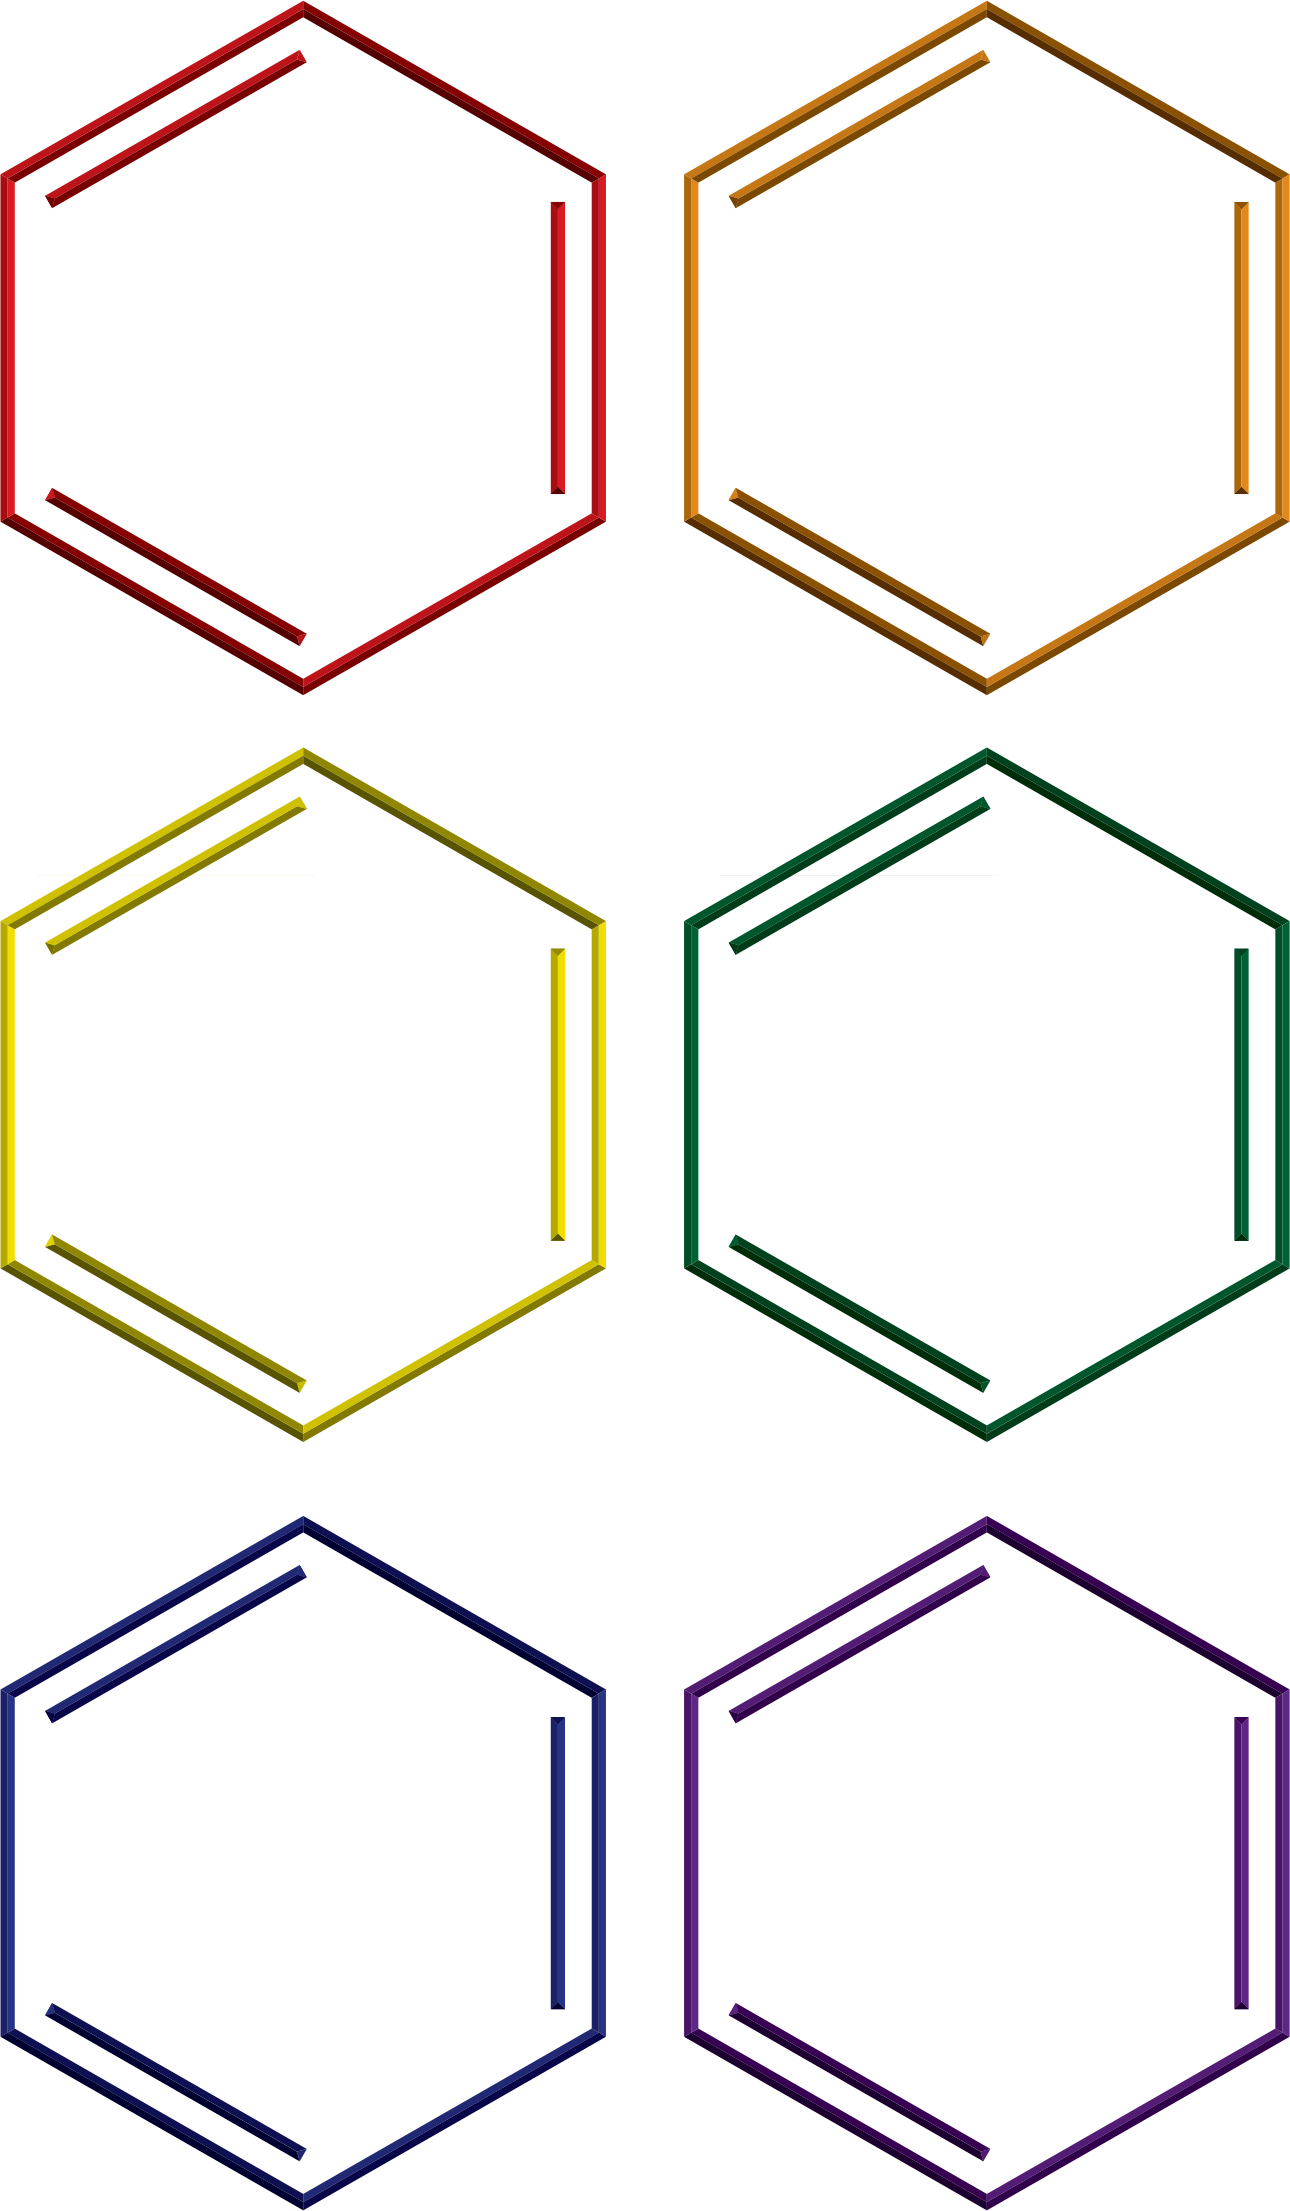 Benzene rings in rainbow colors by jhnri4